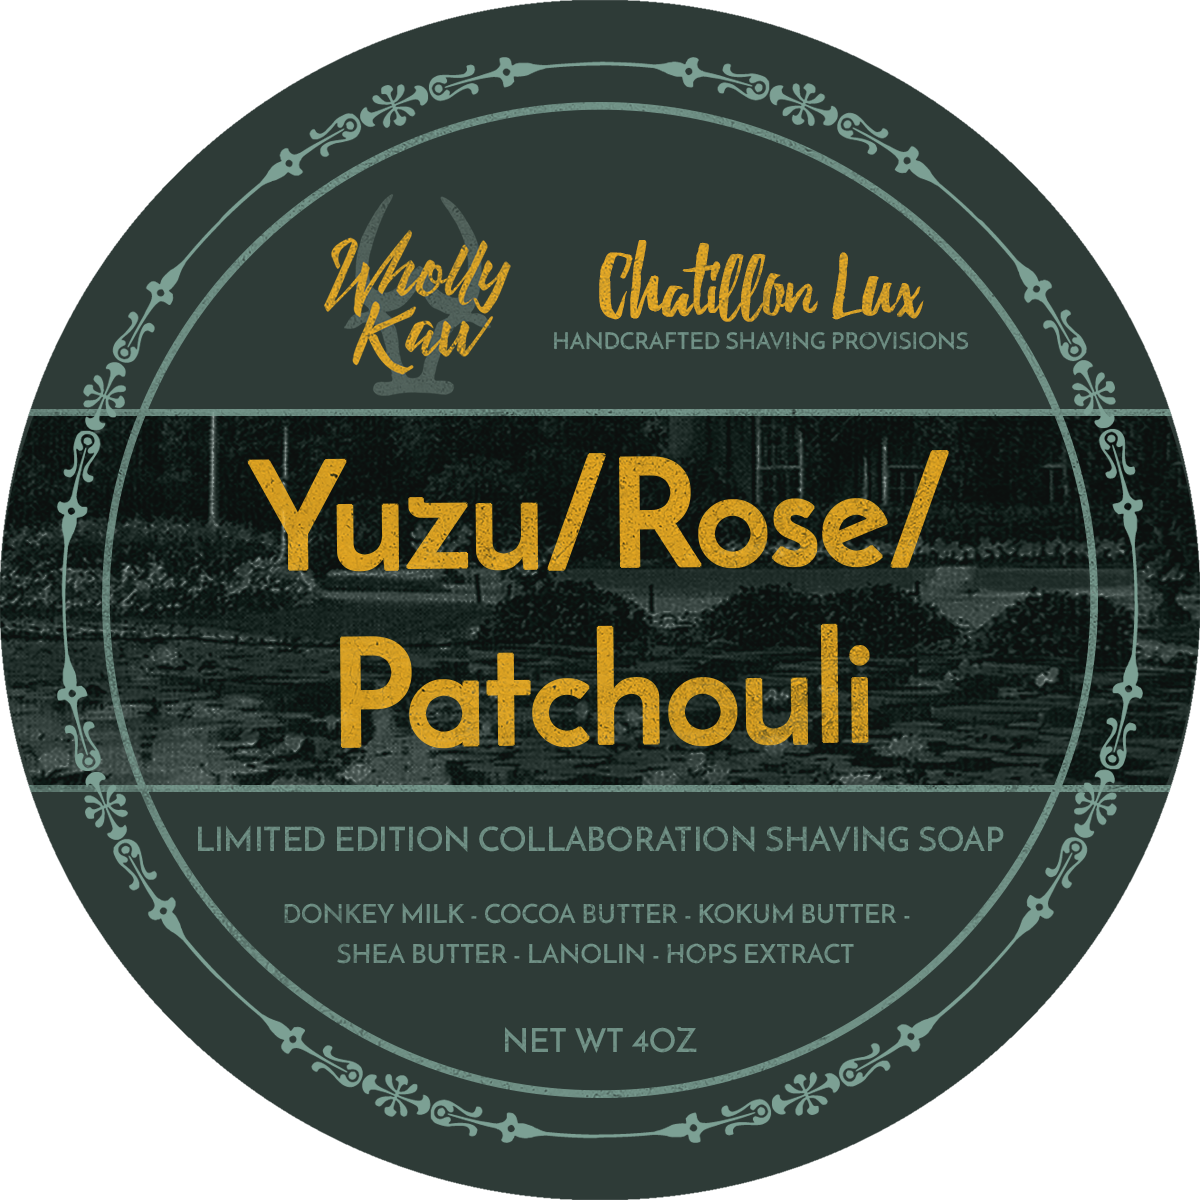 Chatillon Lux/Wholly Kaw - Yuzu/Rose/Patchouli - Soap (LE) image